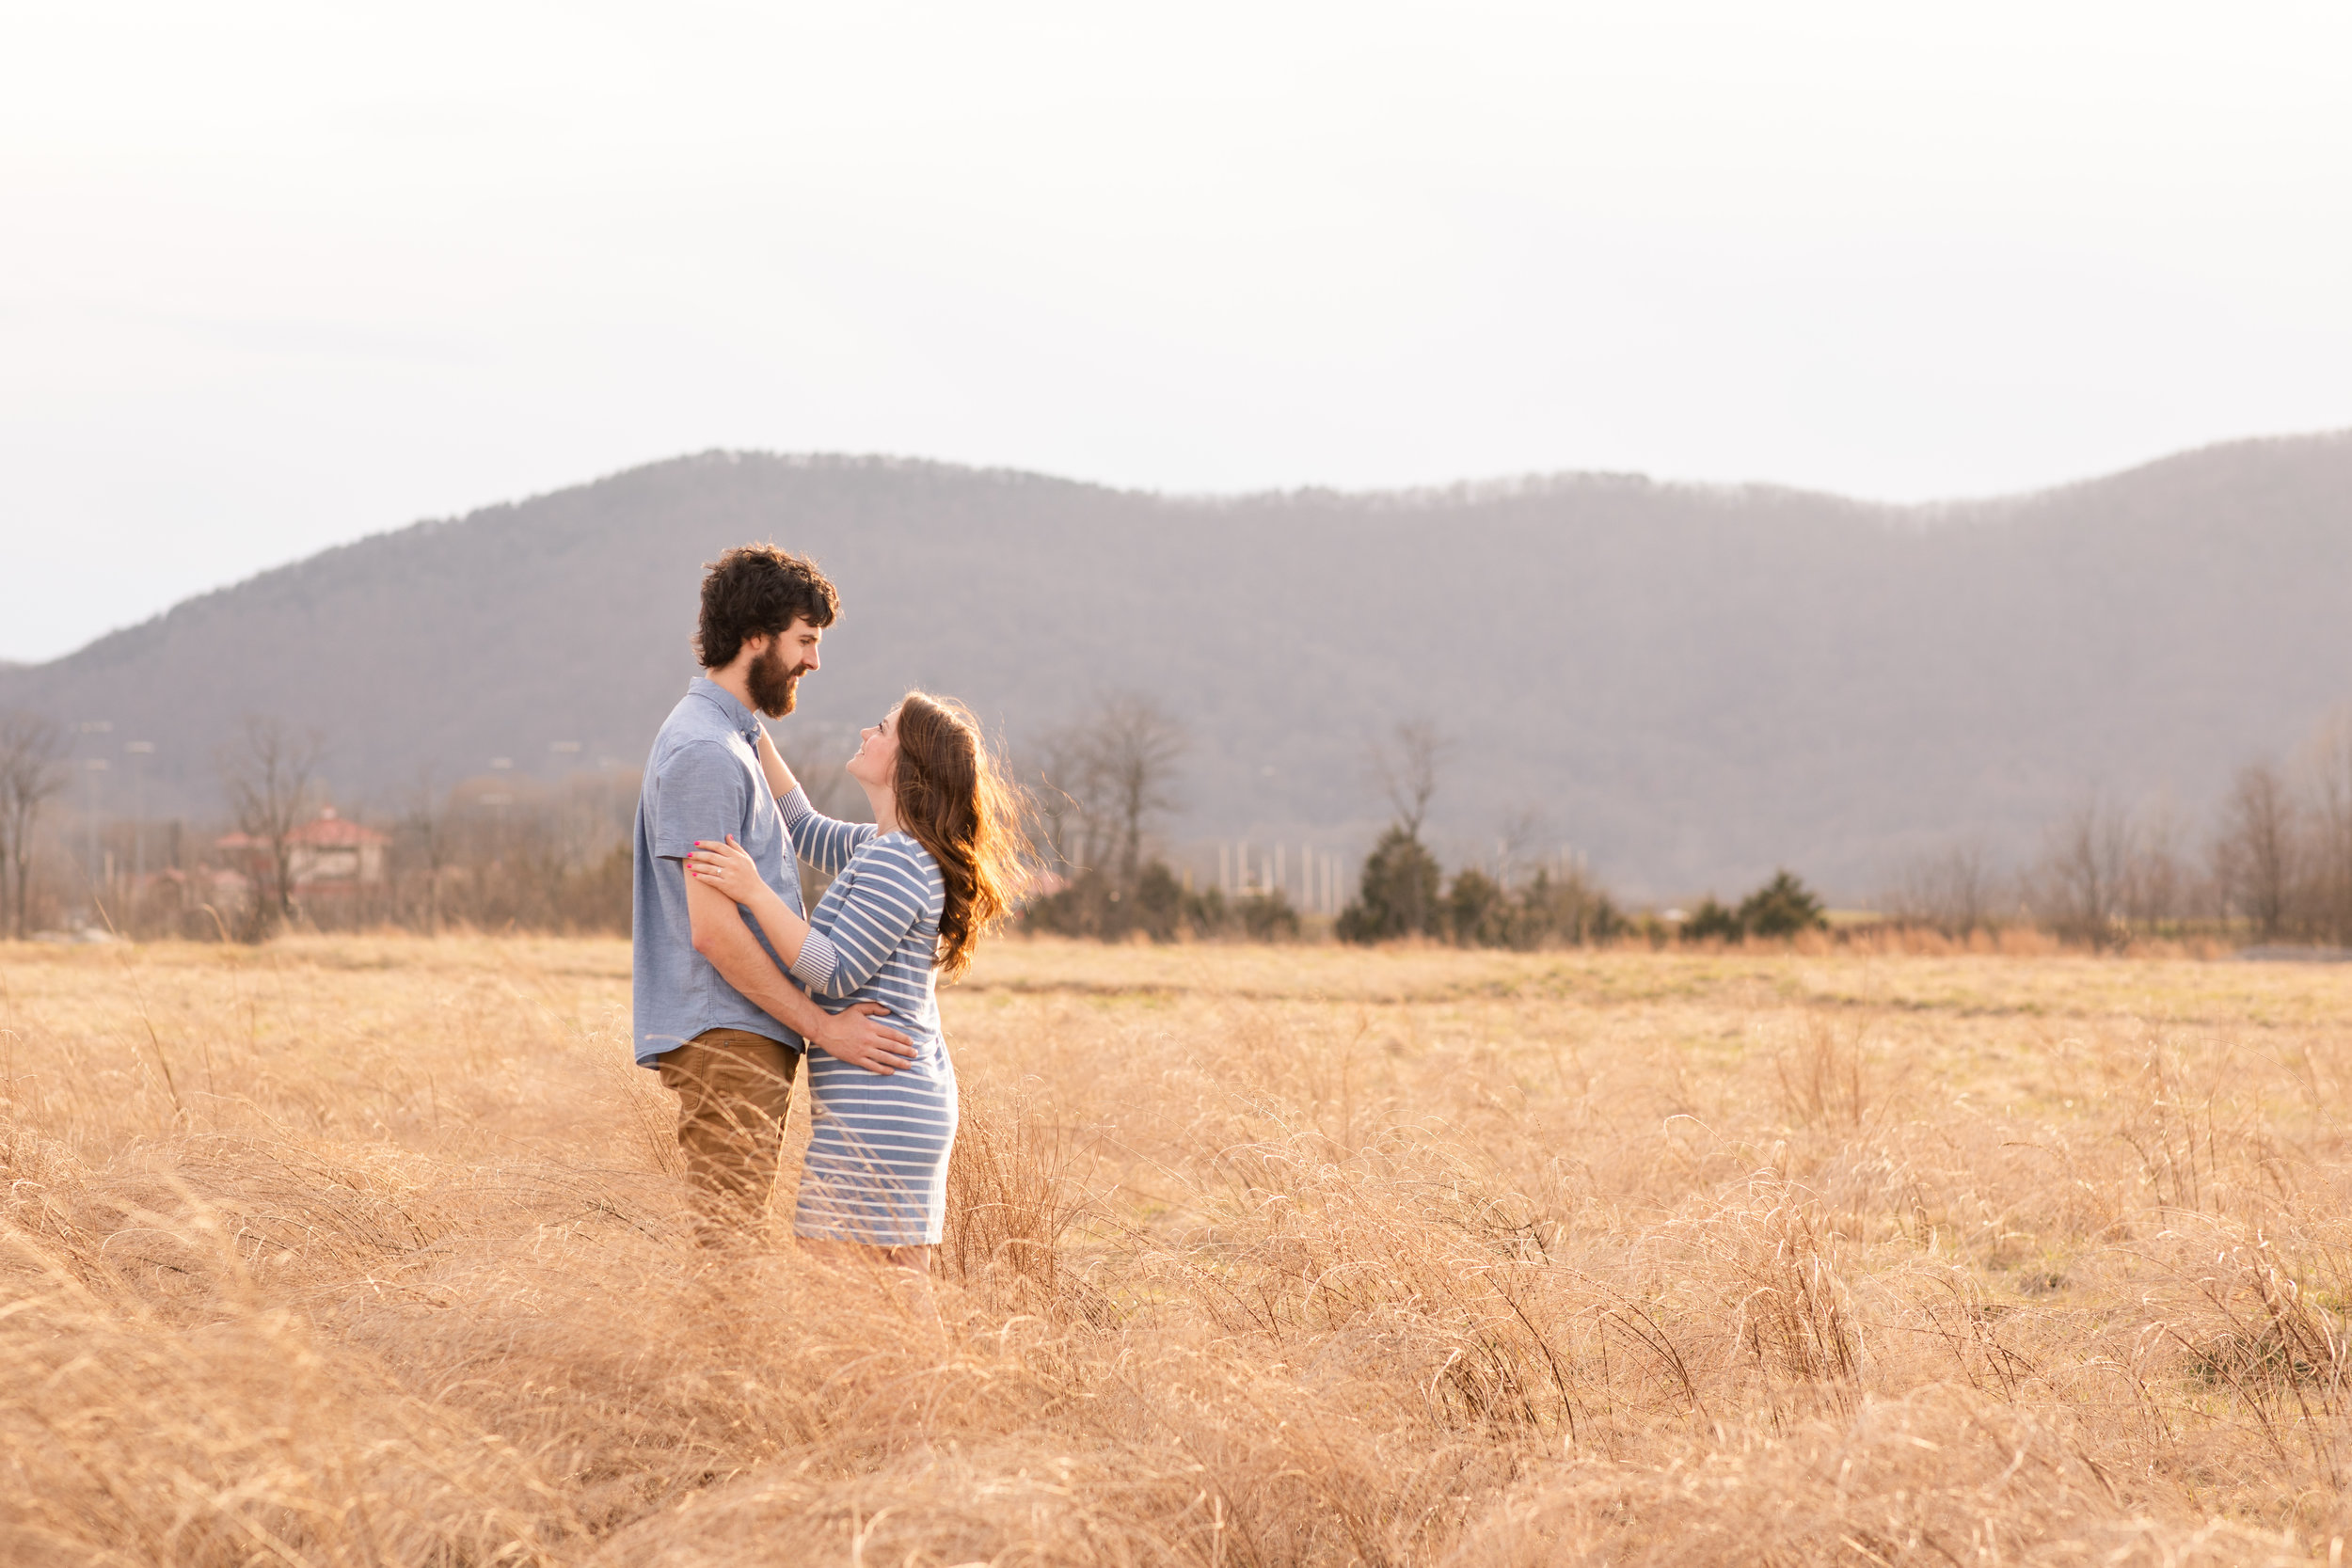 Check out Matthew and Callie's Engagement Session  HERE